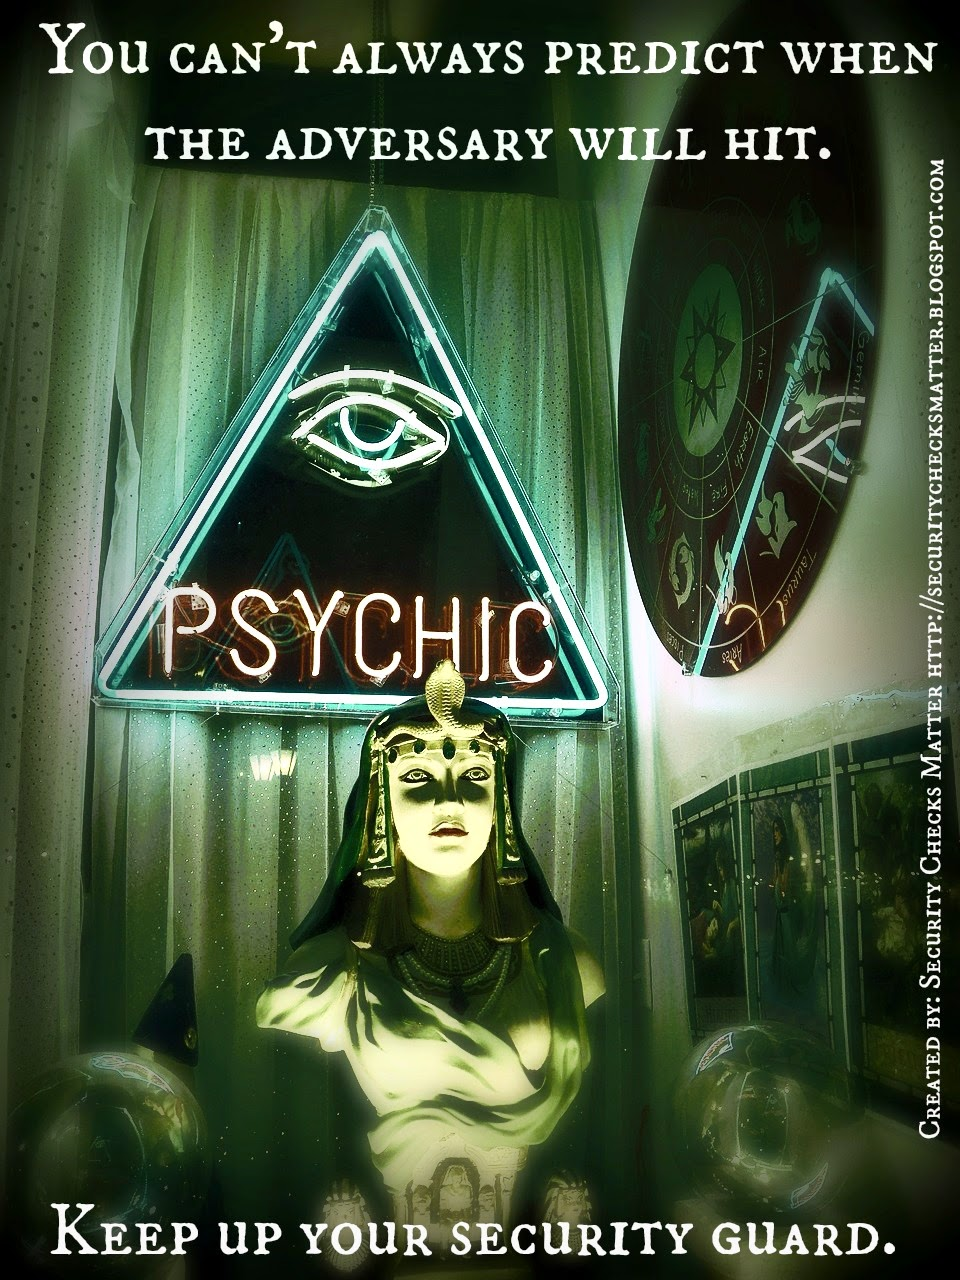 psychic security poster